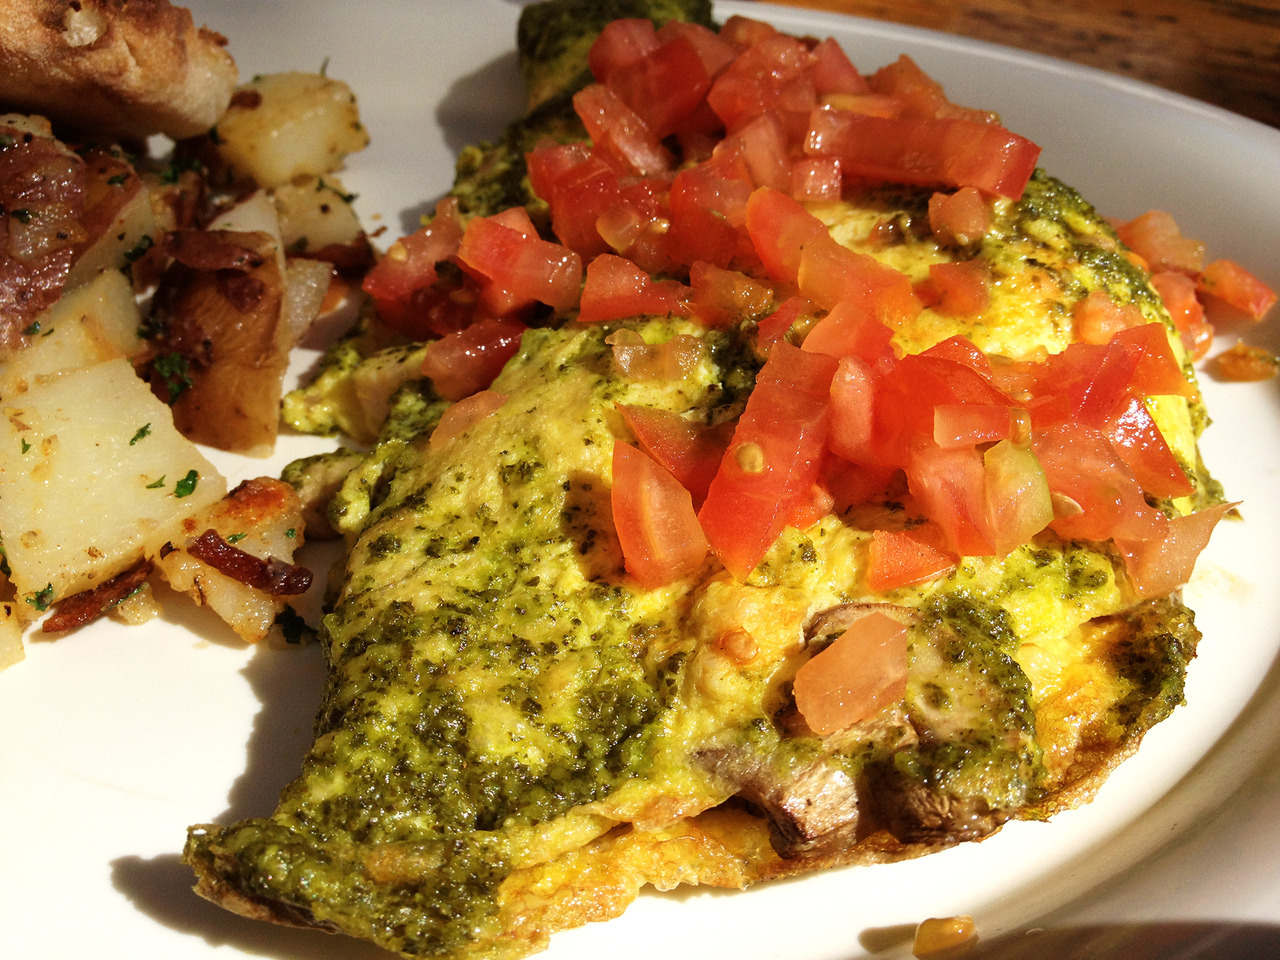 Greek omelet with feta, spinach, and tomatoes. Opa! -Braised Bombshell